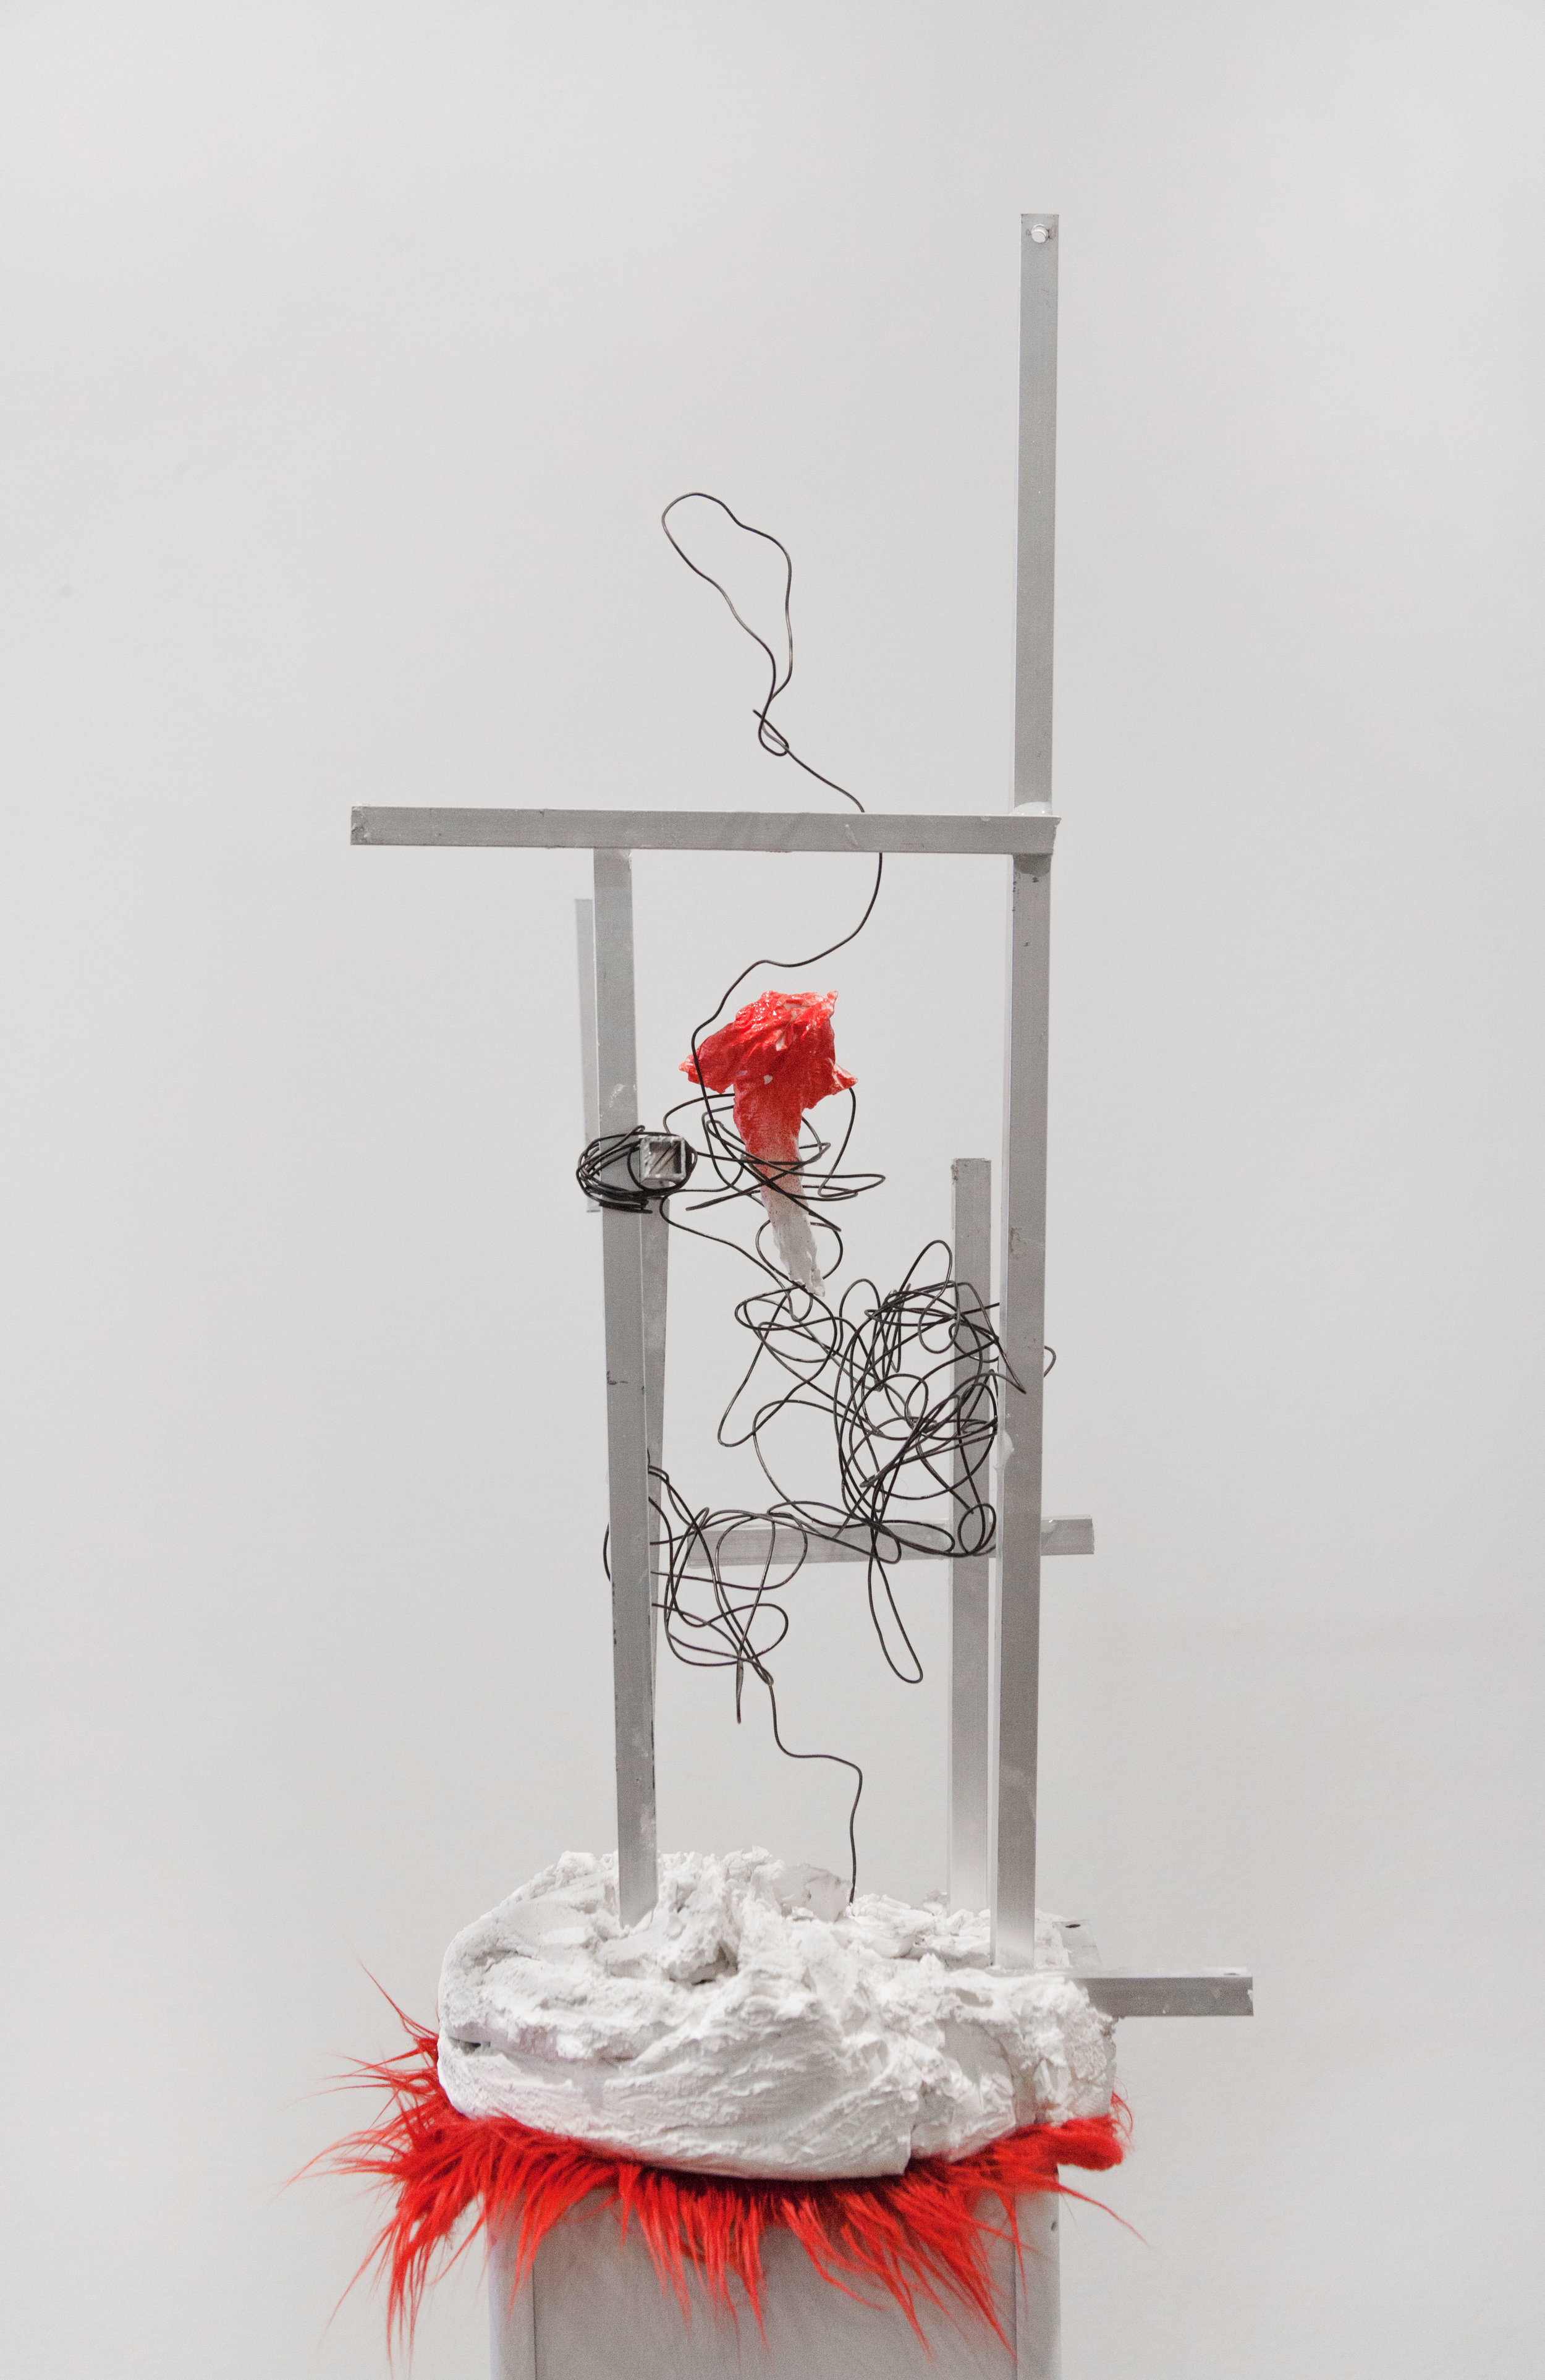 untitled, 2017, metal rods, plaster, synthetic fur & plastic plinth, Gallery 4Culture, Photo by Max Cleary